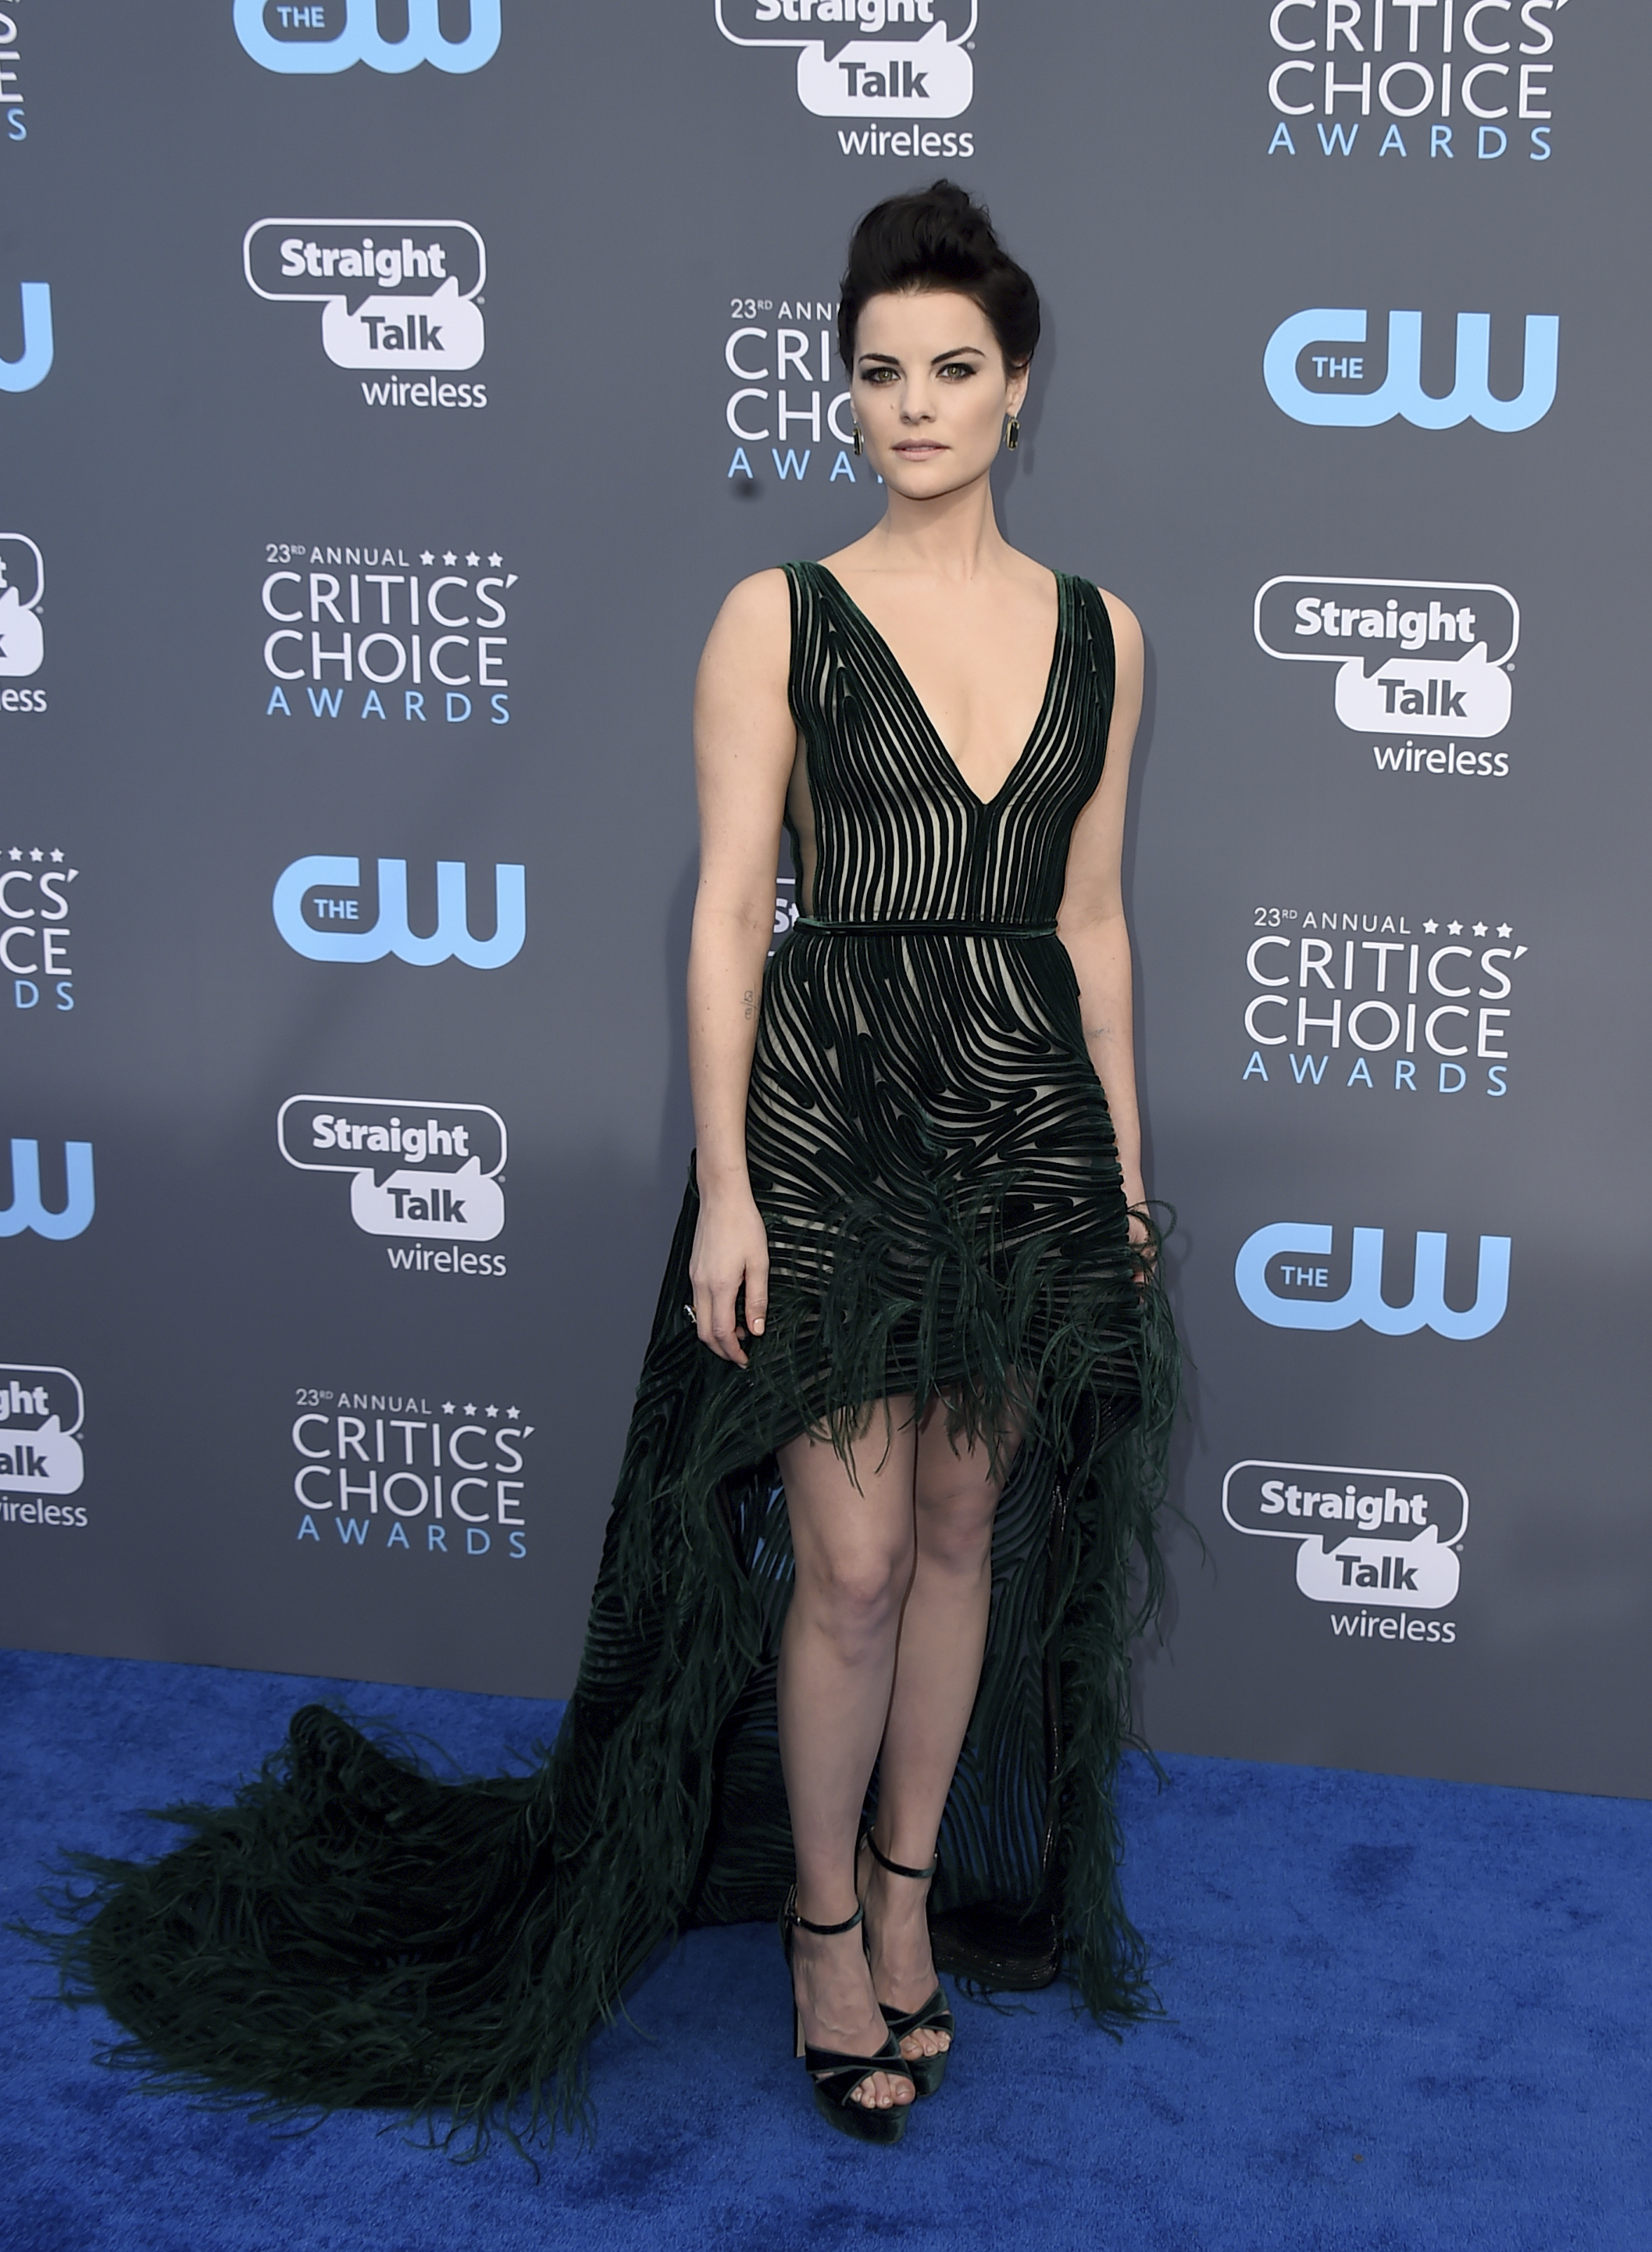 <div class='meta'><div class='origin-logo' data-origin='AP'></div><span class='caption-text' data-credit='Jordan Strauss/Invision/AP'>Jaimie Alexander arrives at the 23rd annual Critics' Choice Awards at the Barker Hangar on Thursday, Jan. 11, 2018, in Santa Monica, Calif.</span></div>